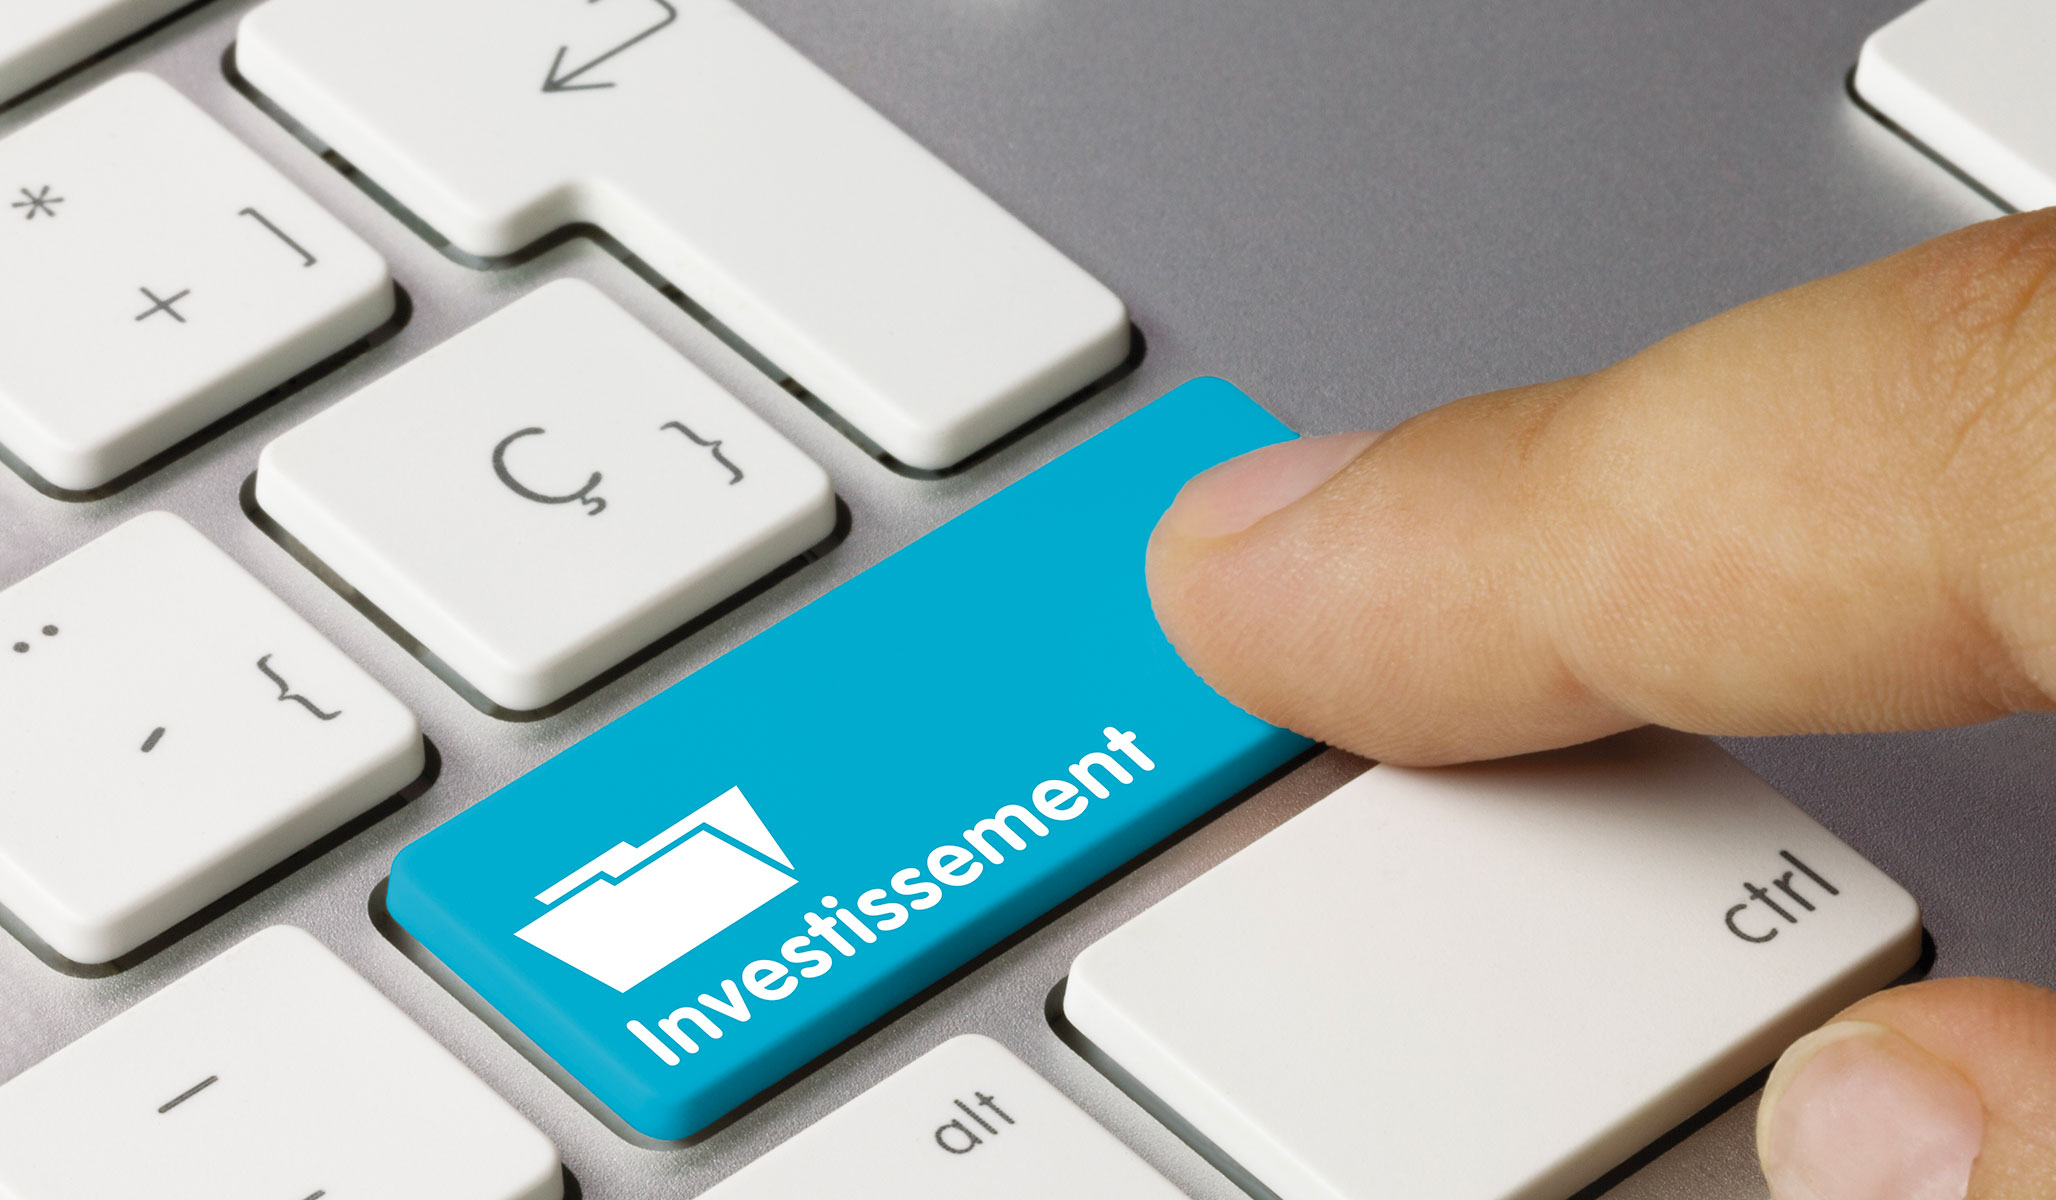 https://www.inter-invest.fr/uploads/actualite/article/89/capital-investissement.jpg